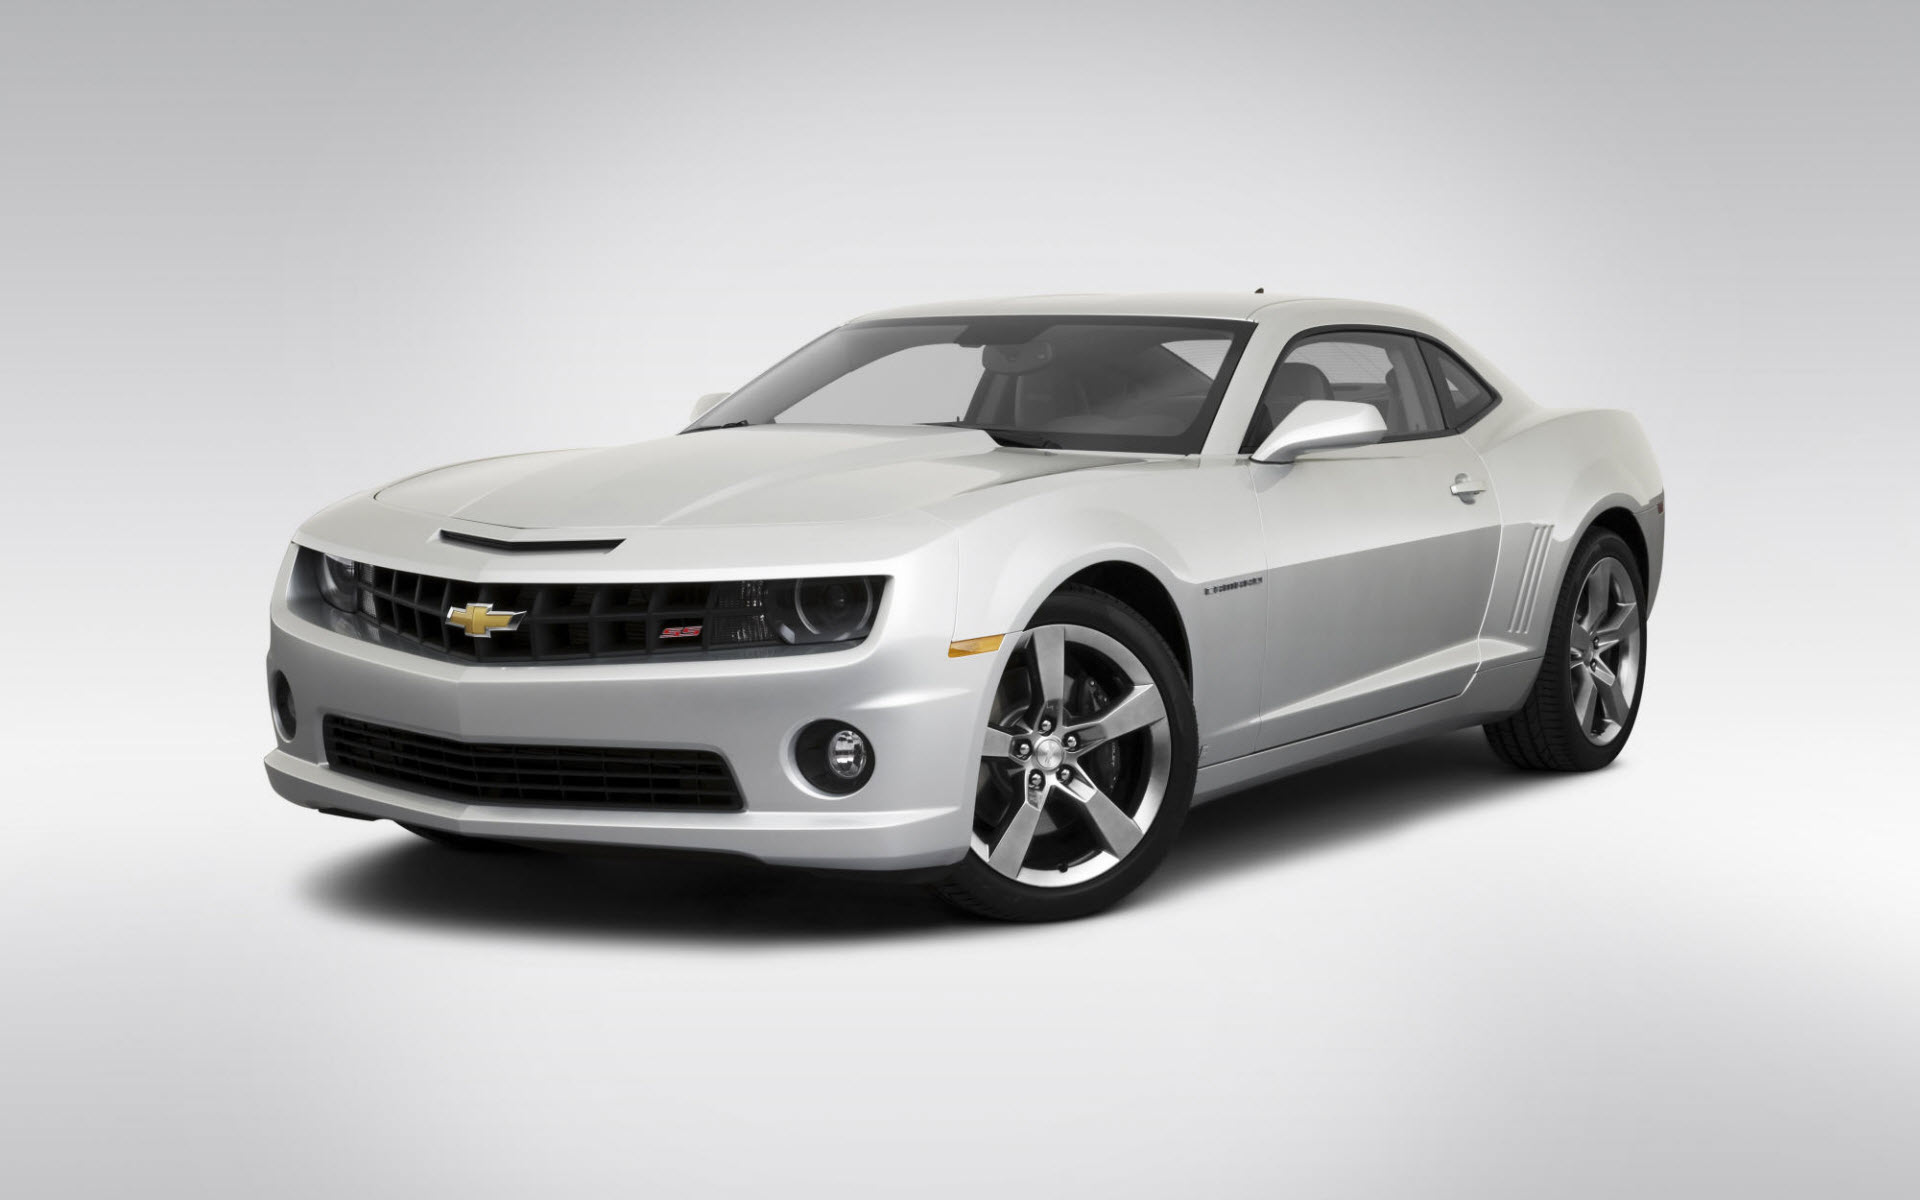 2010 Chevrolet Camaro 2SS Wallpapers HD Wallpapers 1920x1200